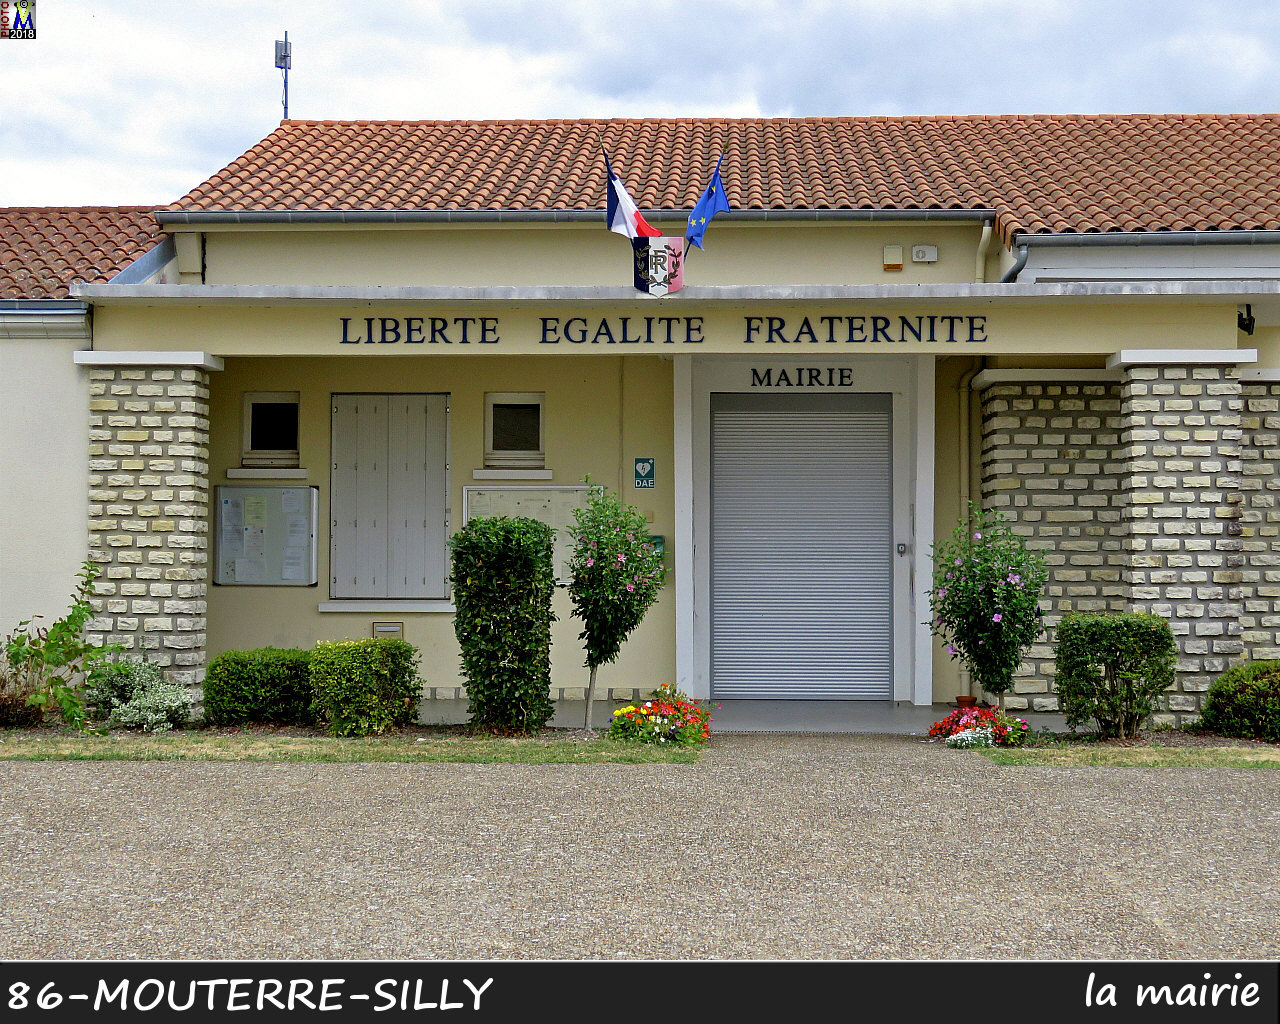 86MOUTERRE-SILLY_mairie_1000.jpg